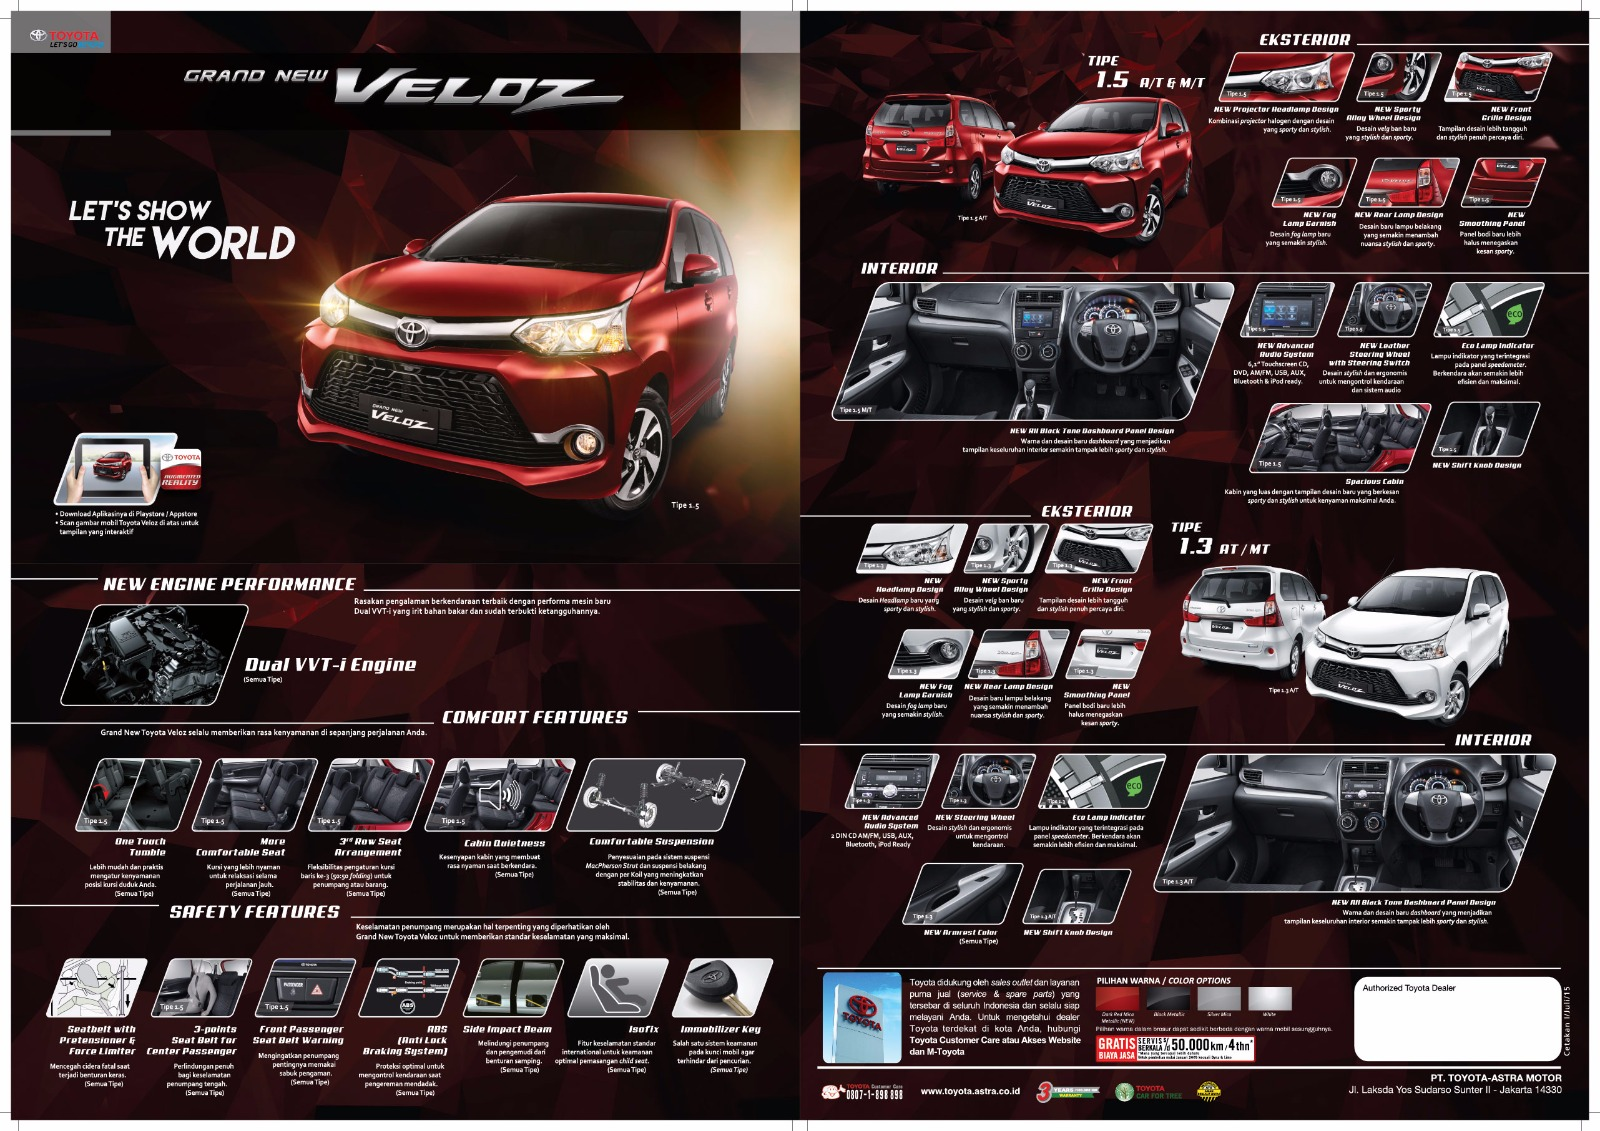 harga grand new avanza veloz all kijang innova type g termurah dealer anzon toyota pontianak kalimantan